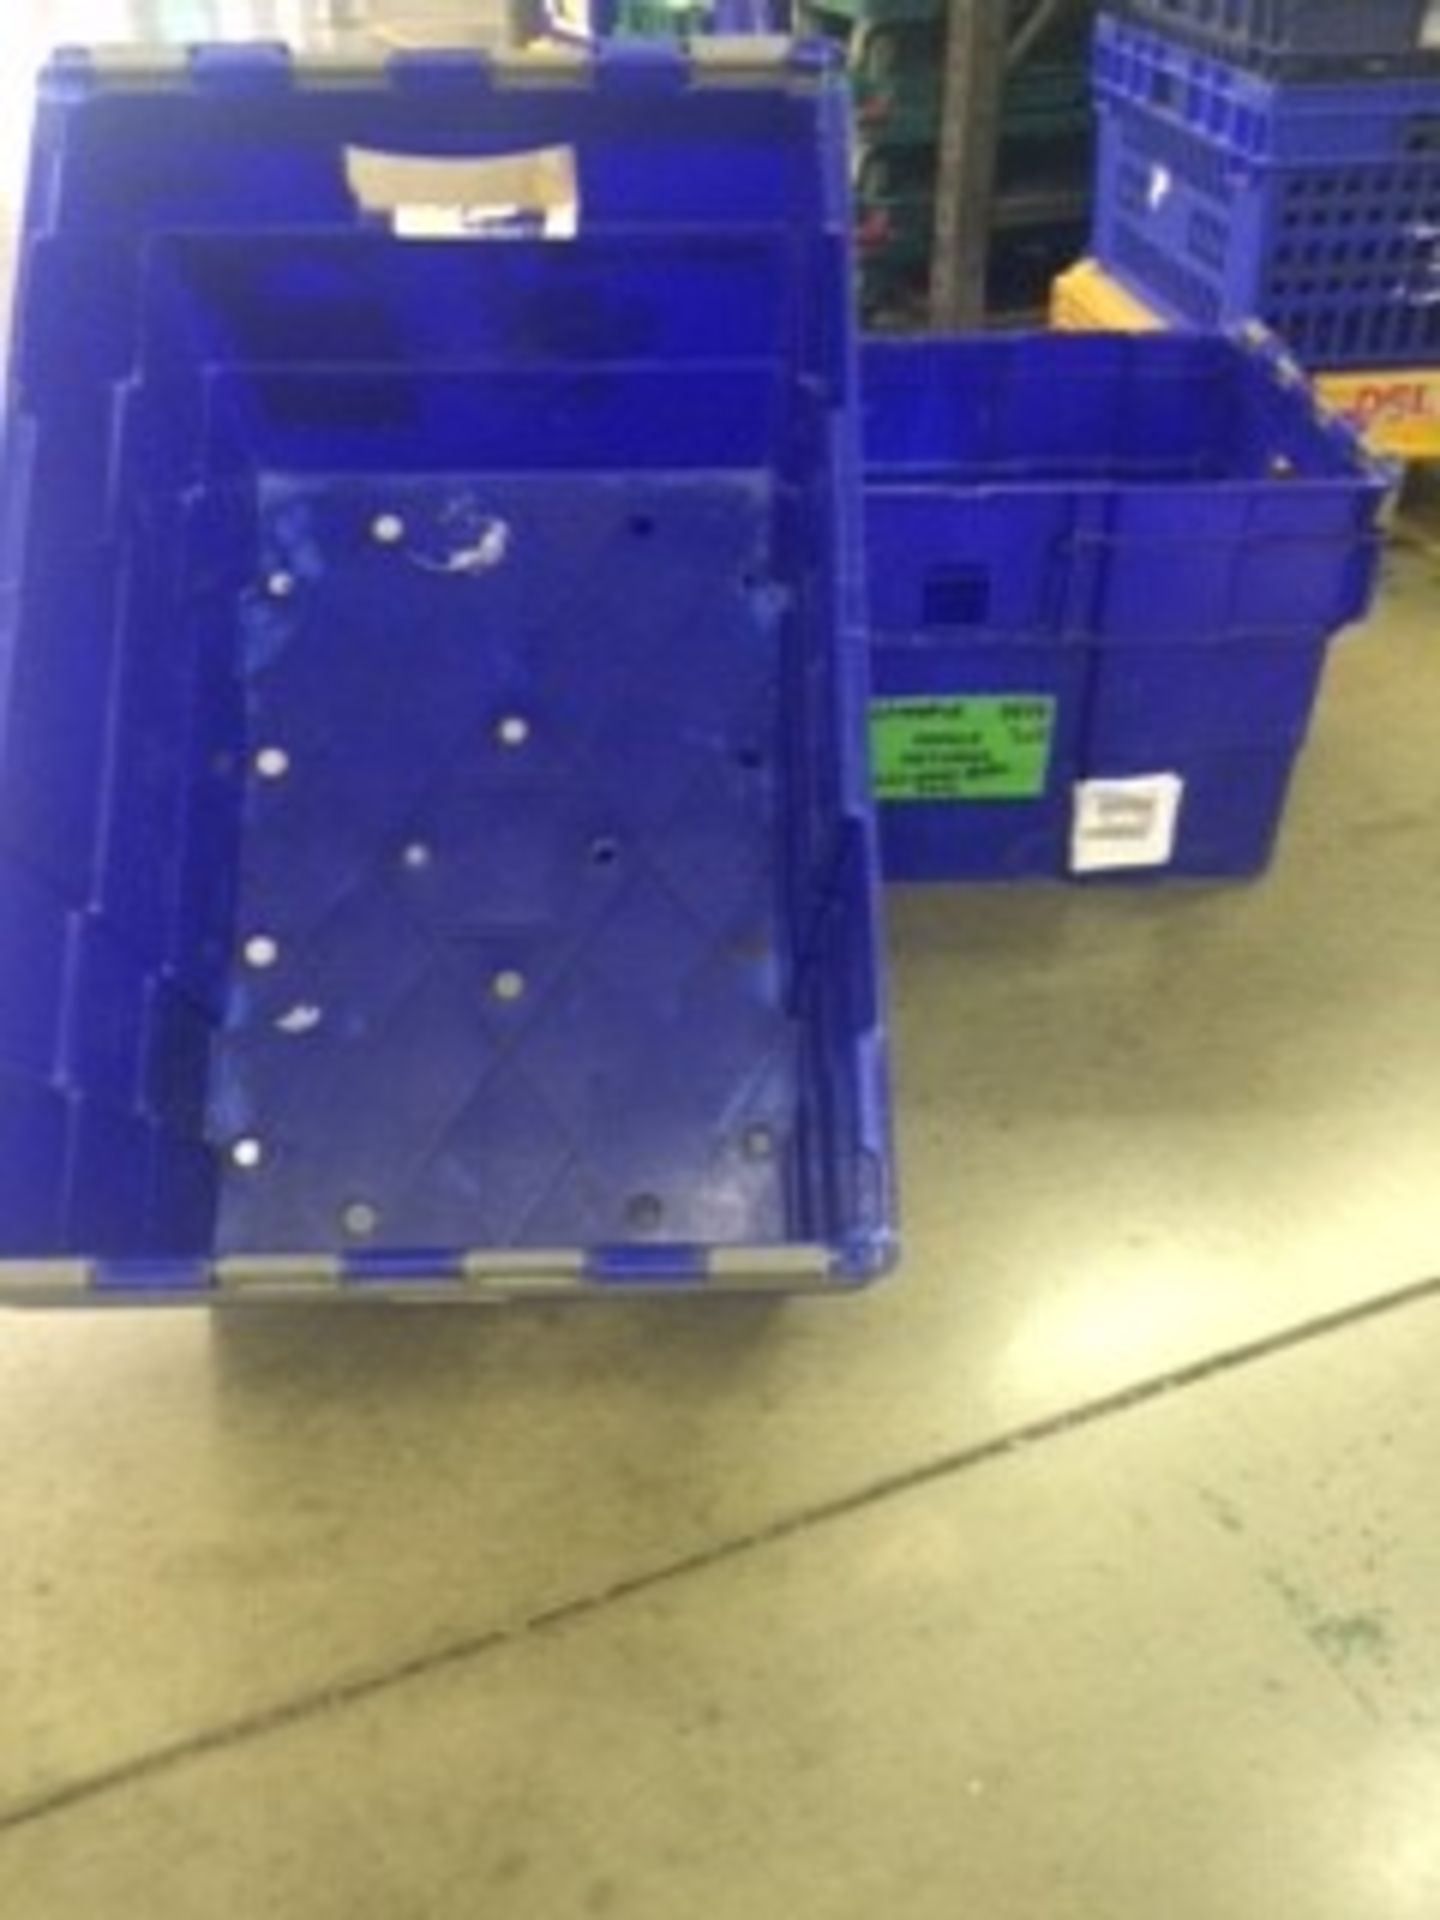 Pallet of 70 x used Blue Solid industrial storage containers/tote boxes from M&S. - Image 4 of 4